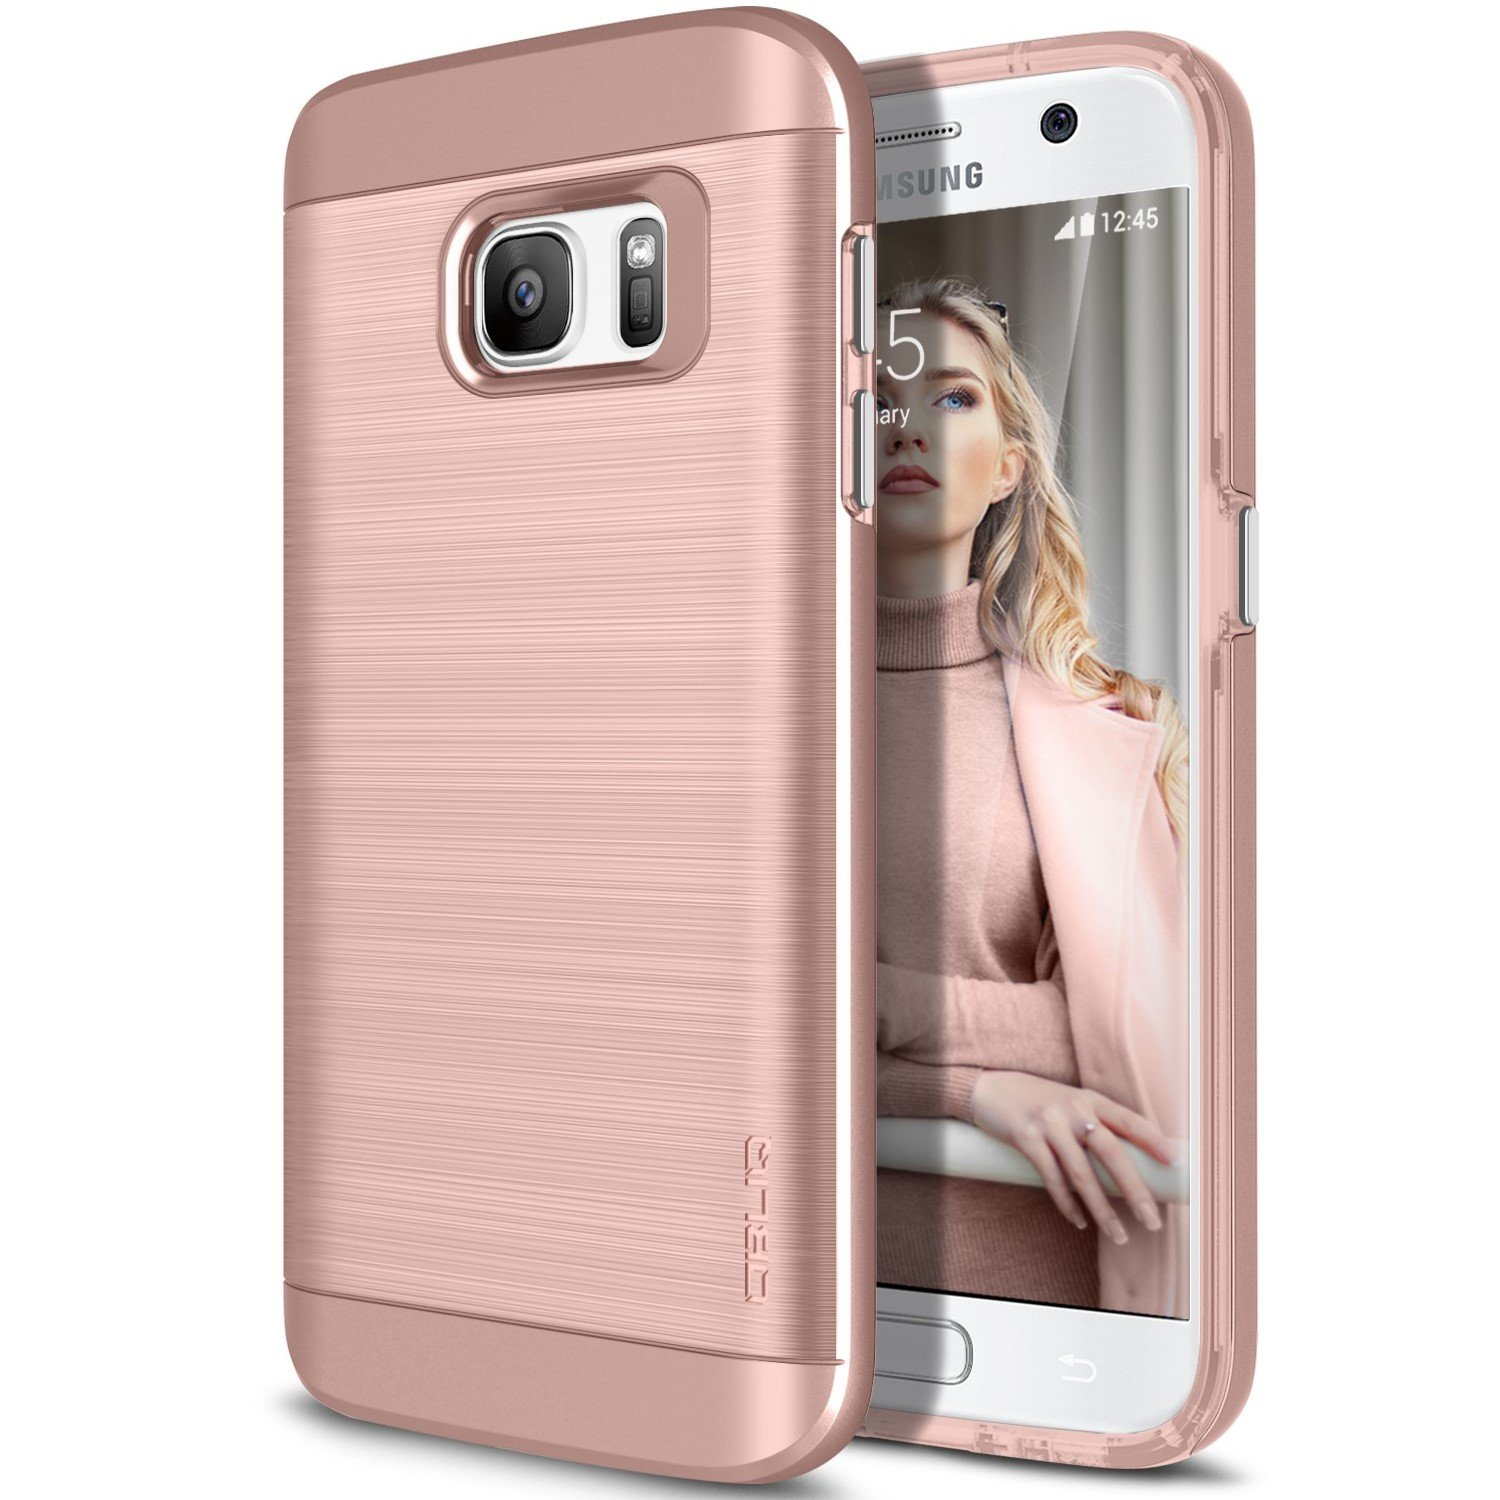 samsung s7 case protective